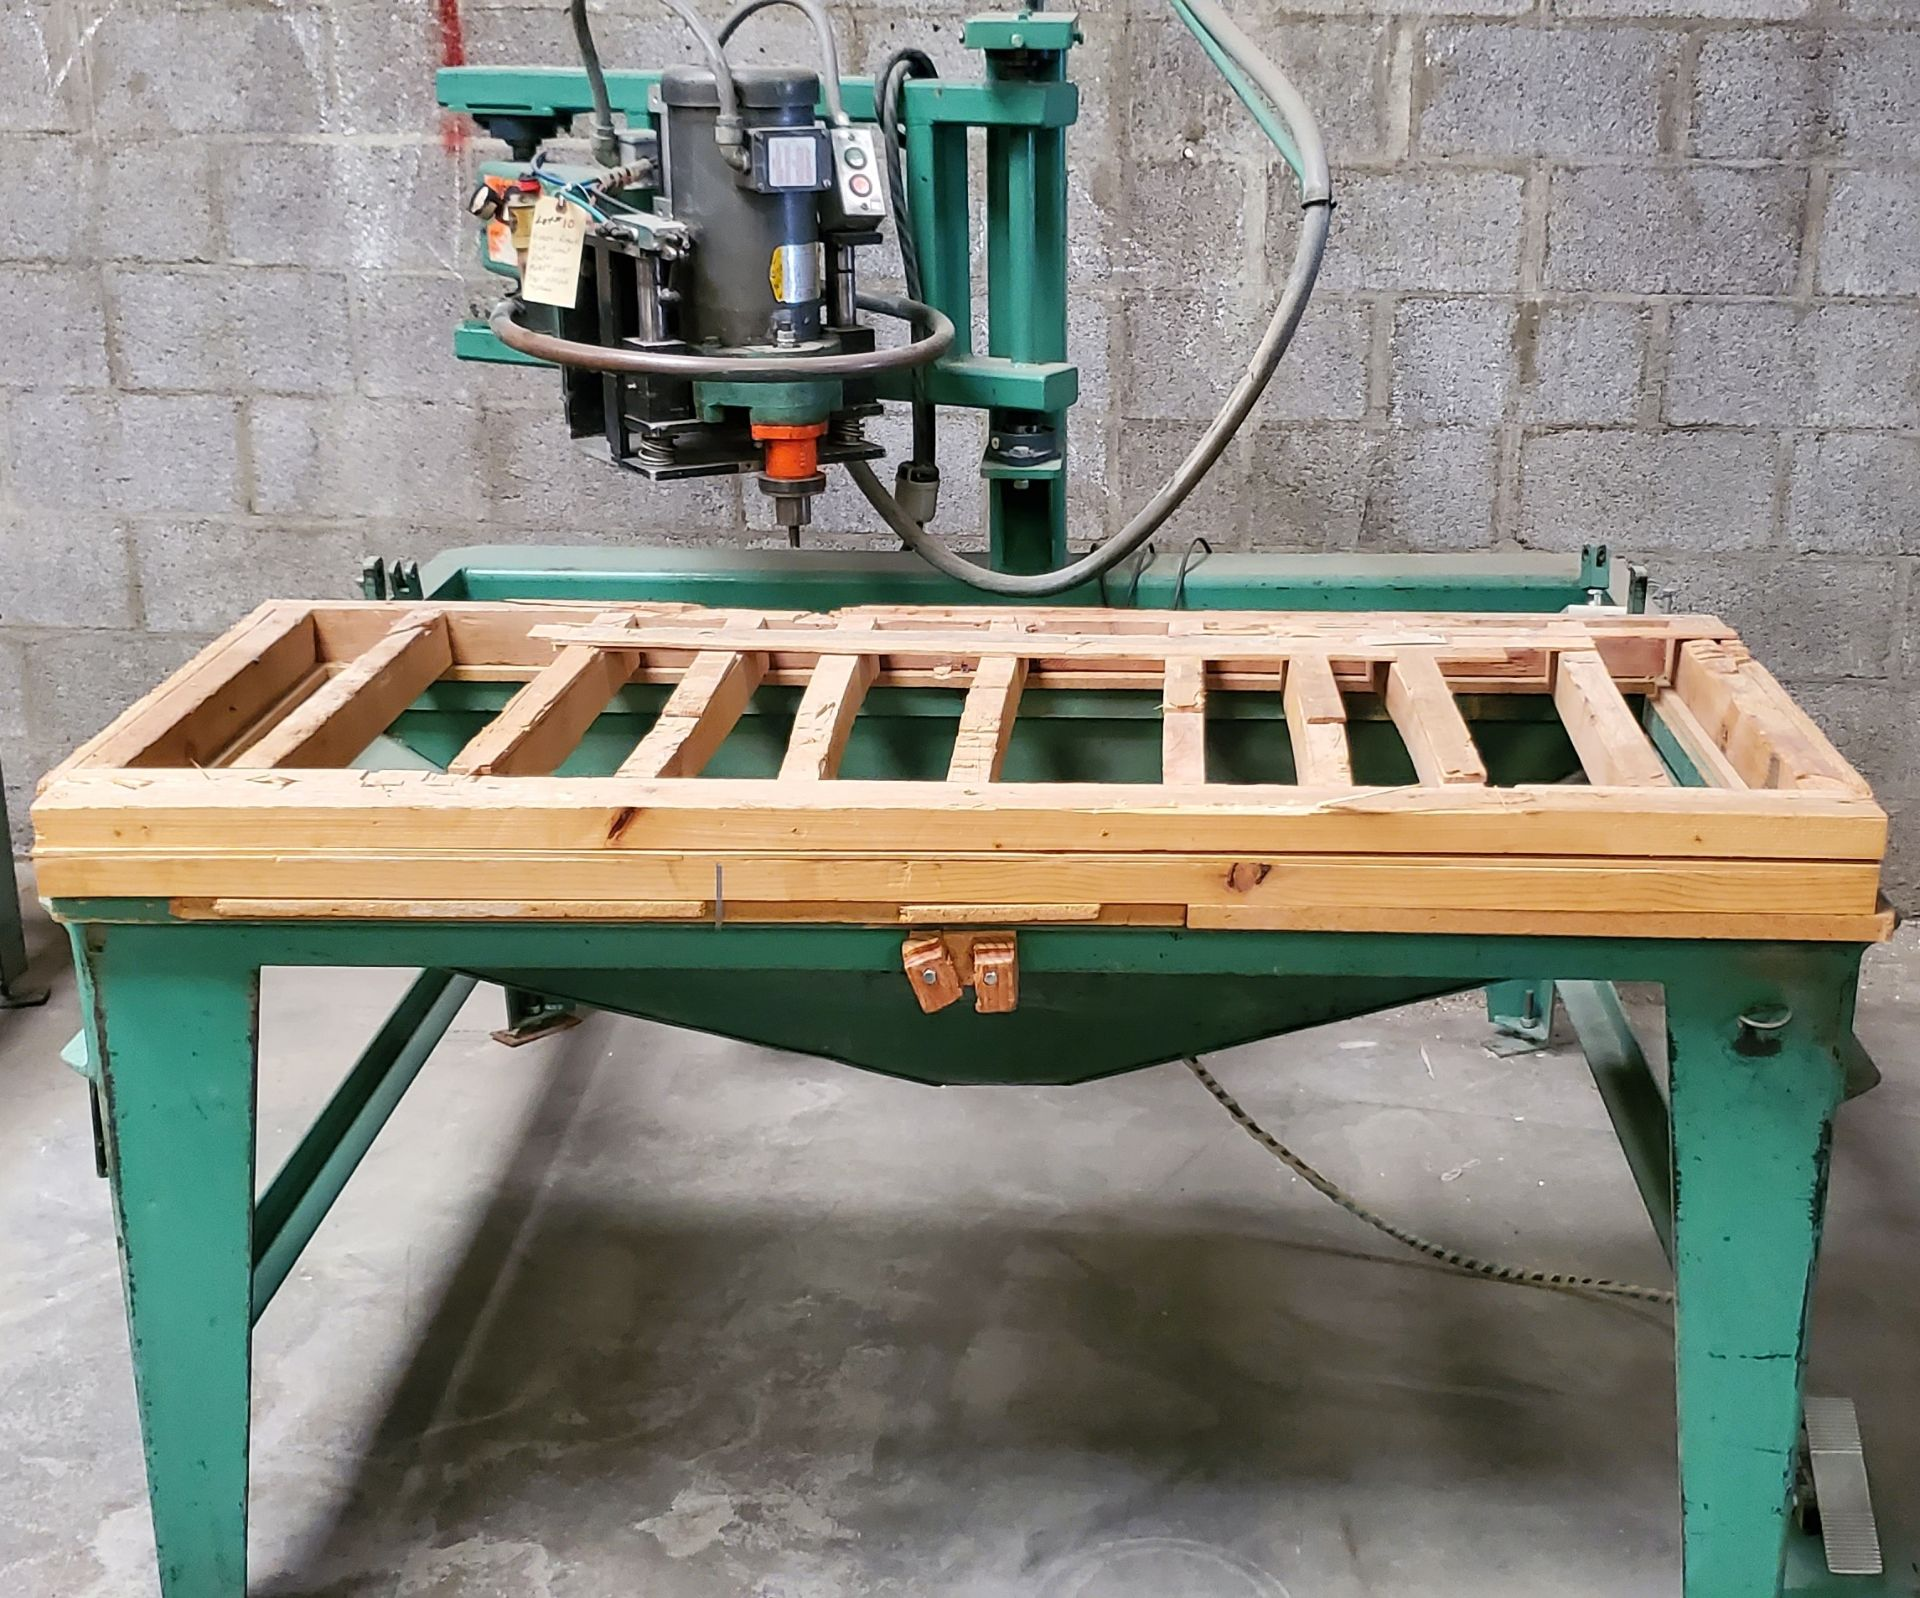 Lot 10 - Evans Roterk Sink Cutout Router, Model #2480, 3HP 220 Volts 3 Phase Motor